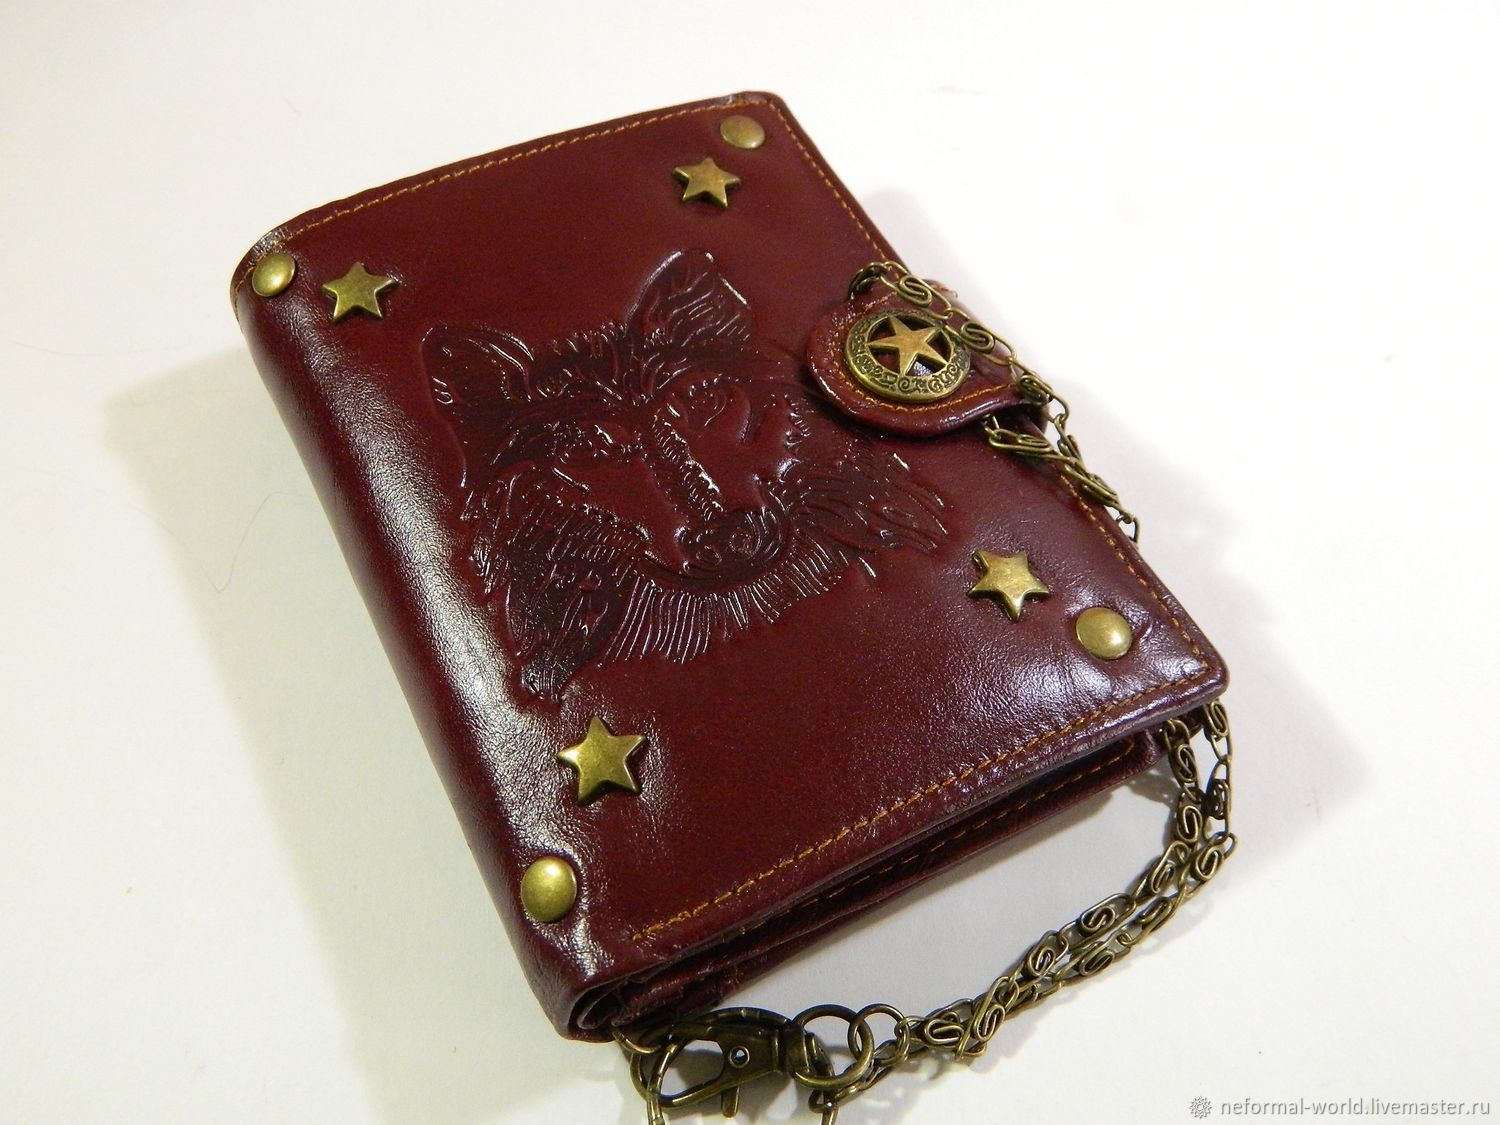 Brutal steampunk 'STAR WOLF' wallet made of genuine leather, Wallets, Saratov,  Фото №1